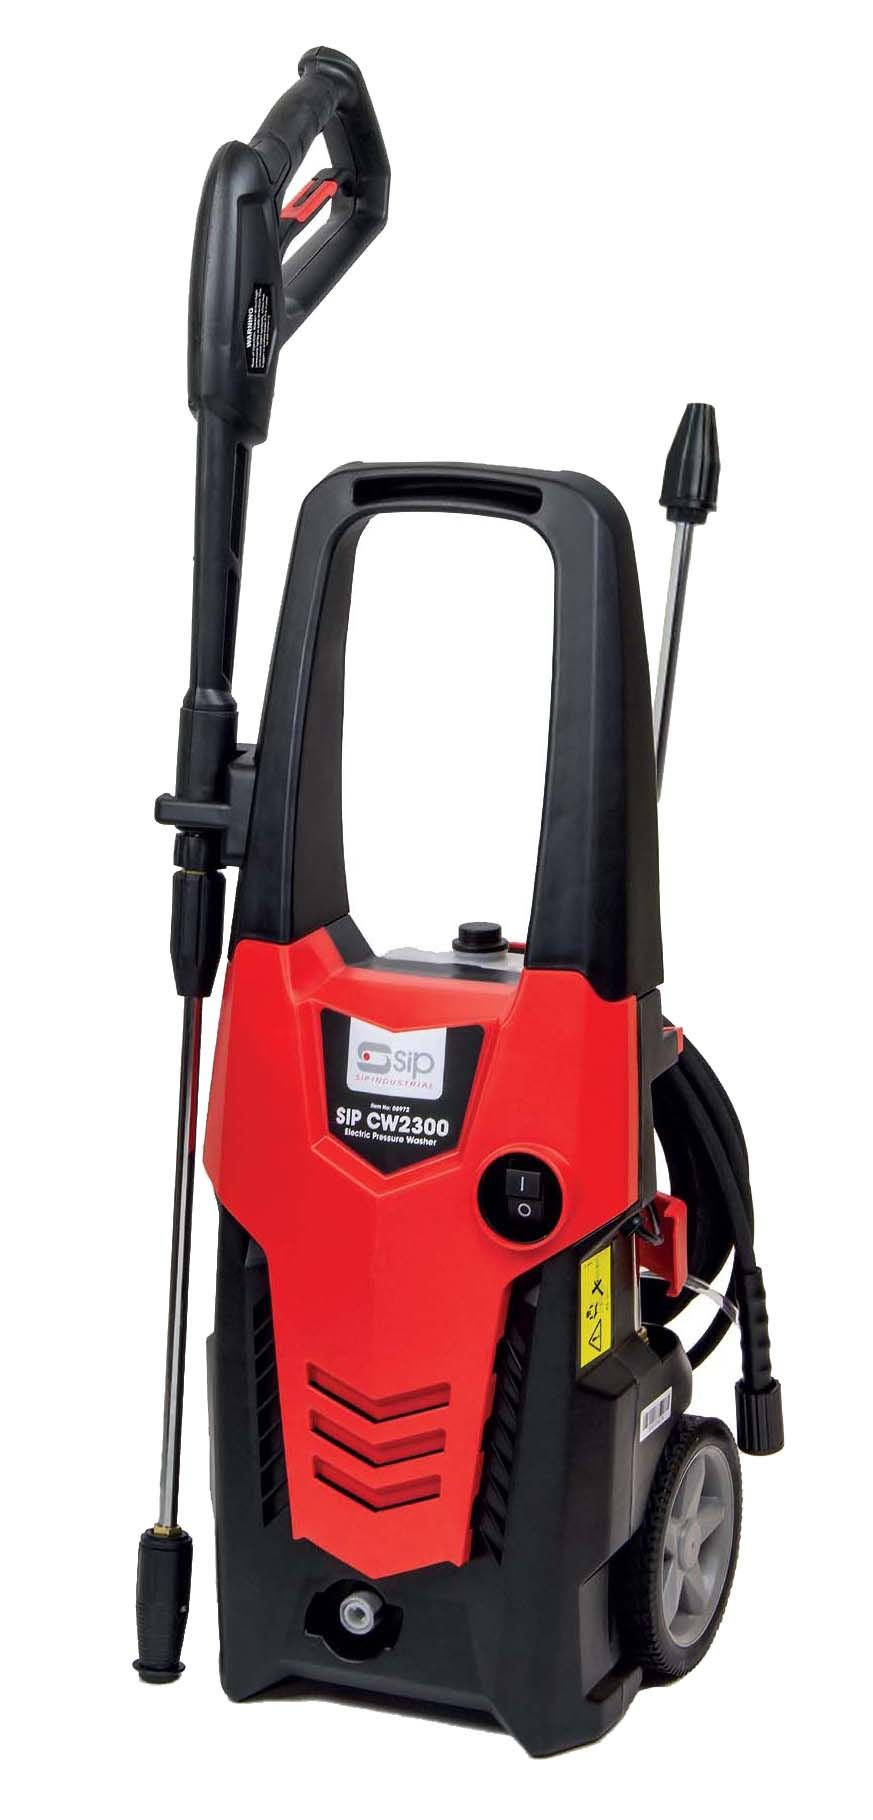 SIP CW2300 Pressure Washer 200 Bar 230v